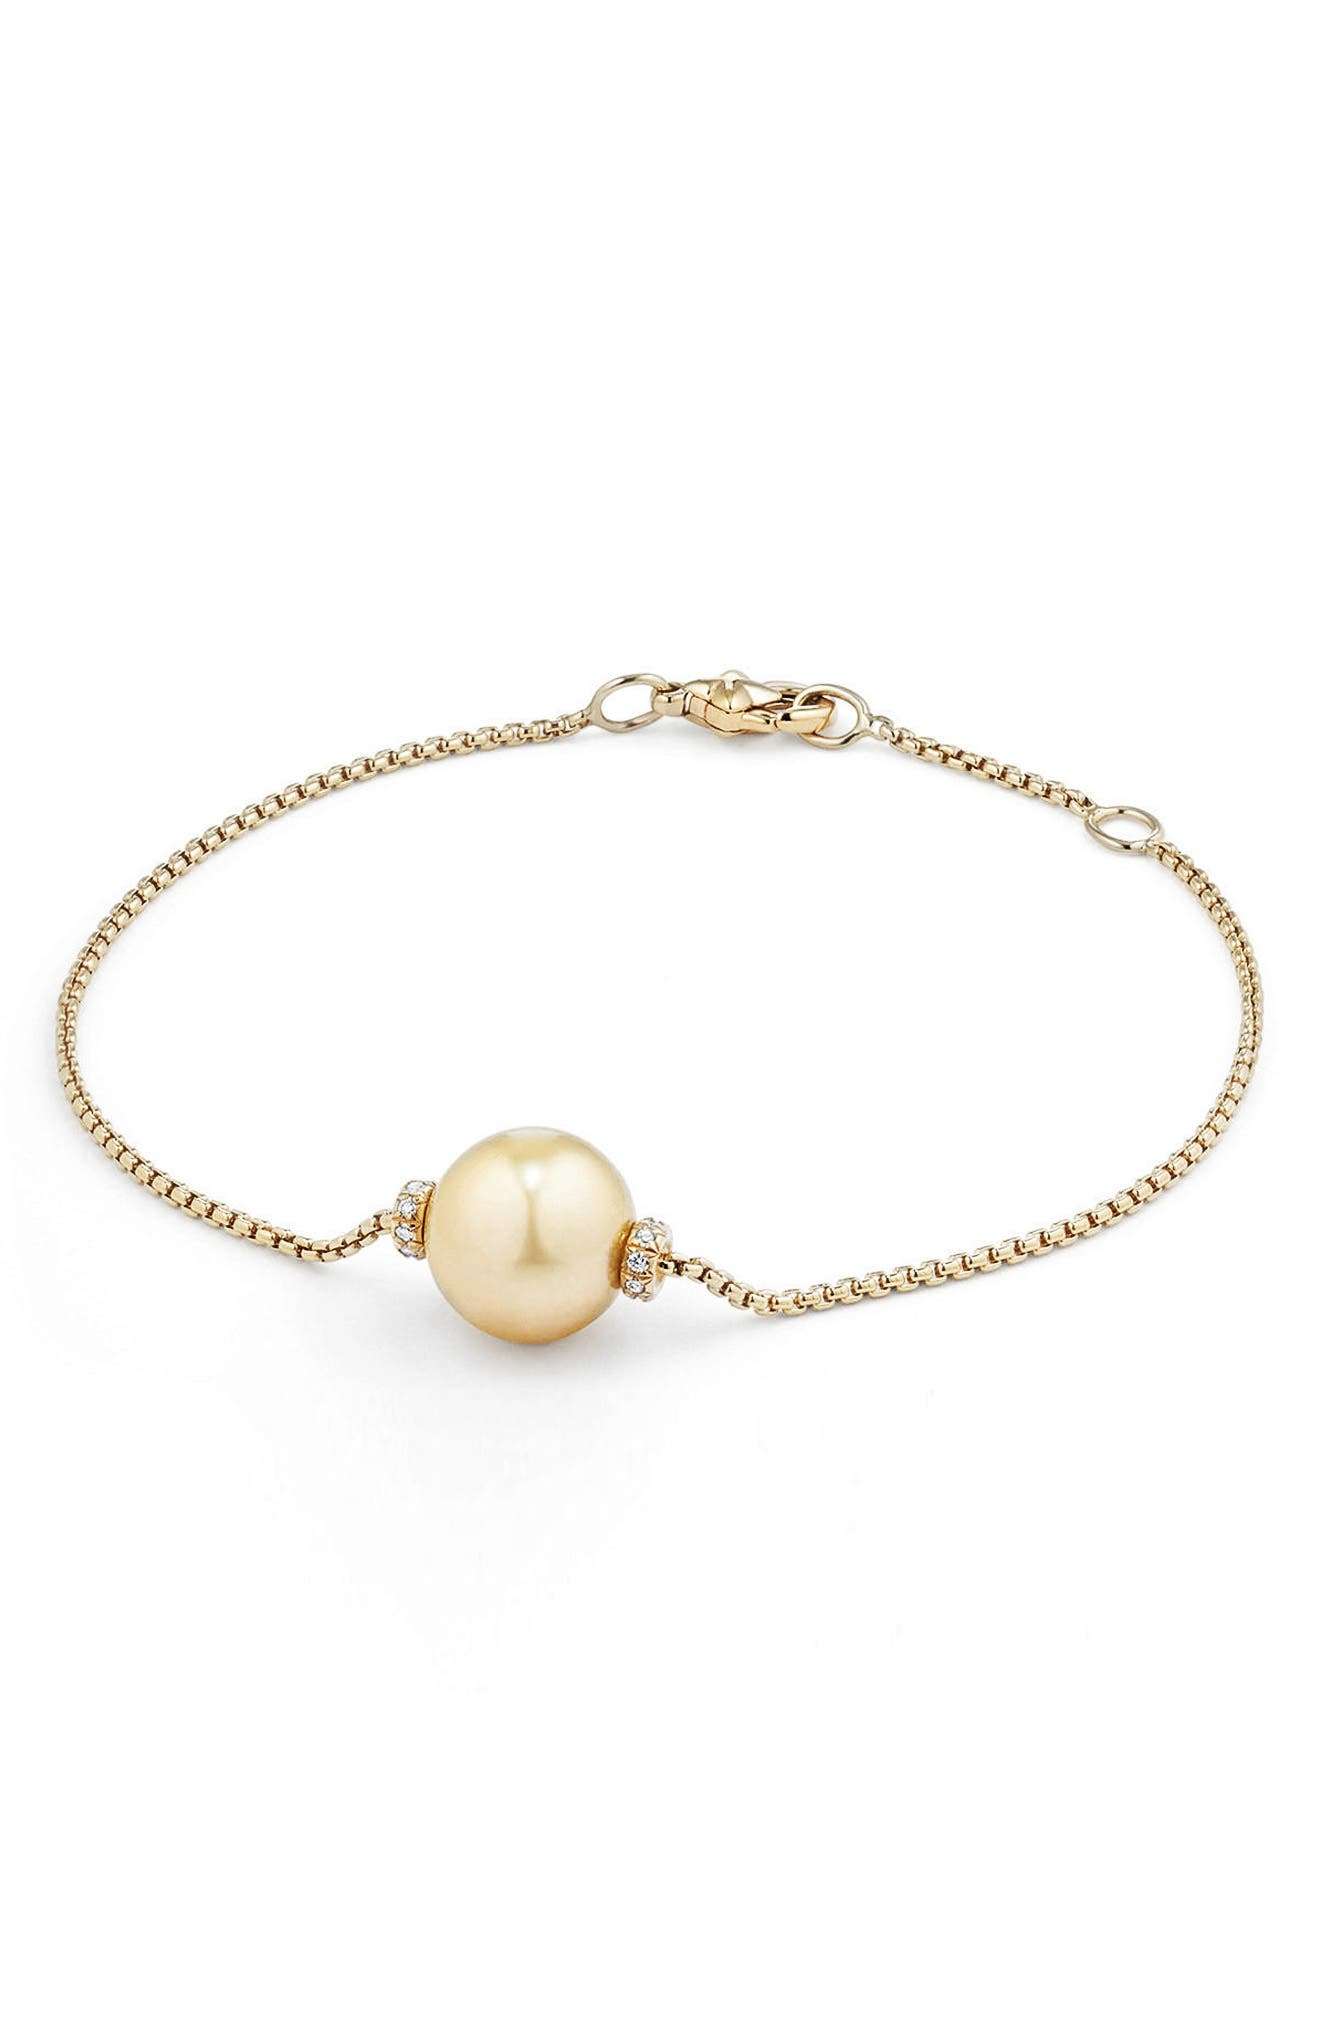 David Yurman Solari Single Station Bracelet in 18k Gold with Diamonds & Pearl